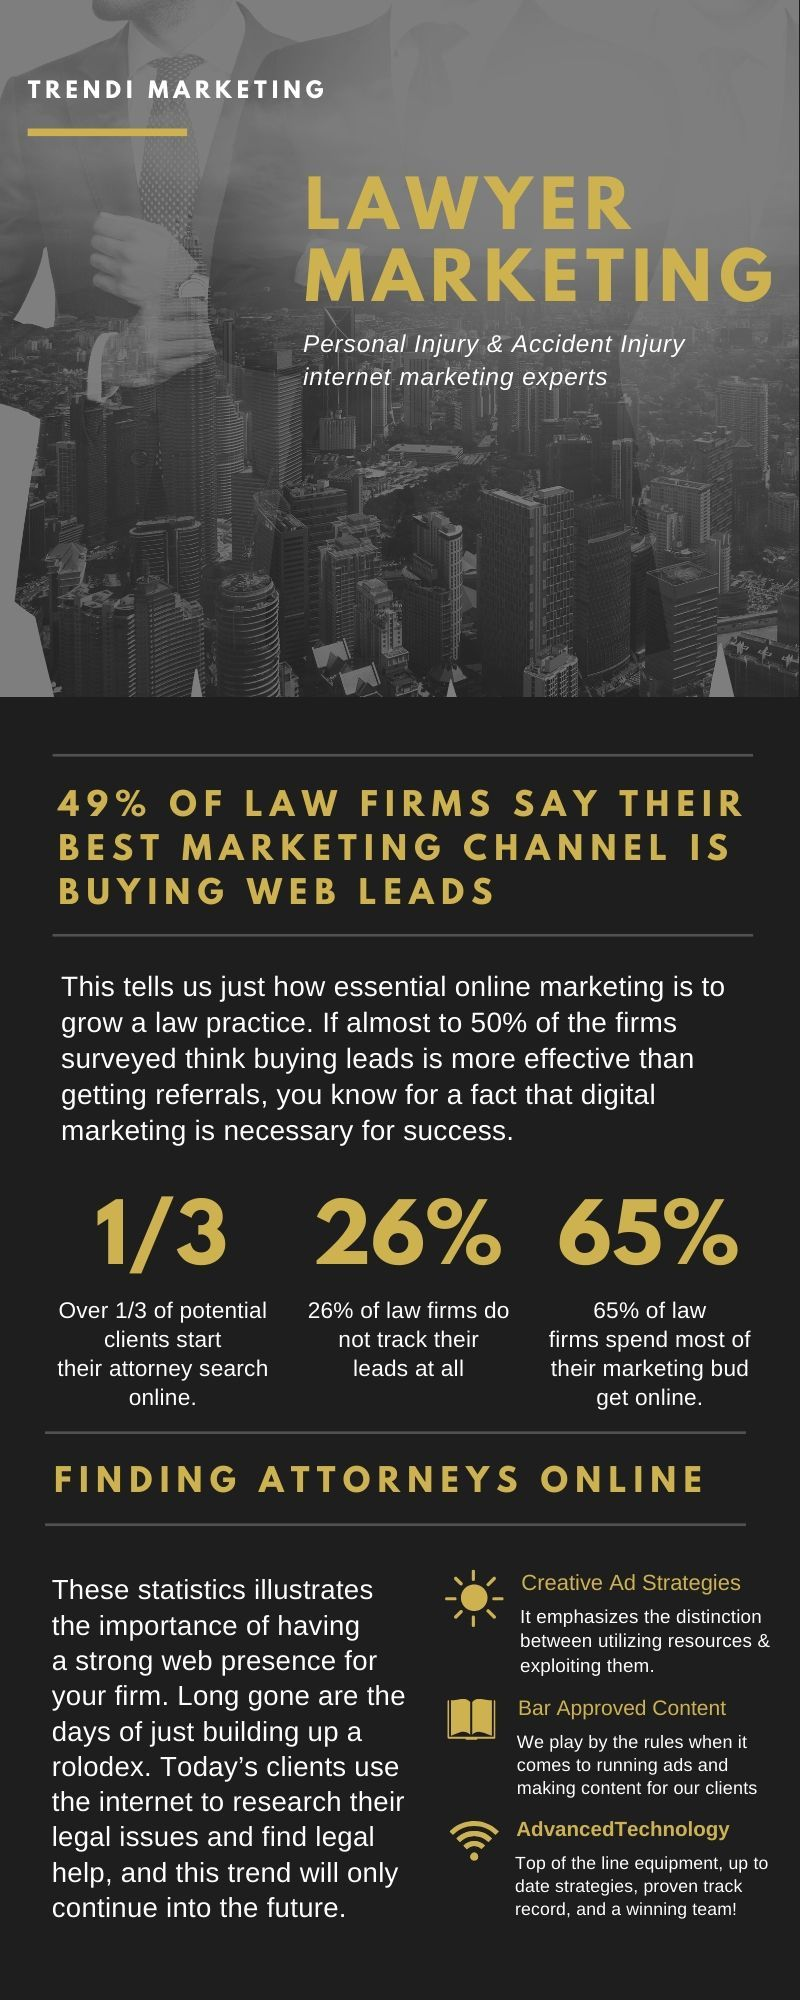 Personal Injury Lawyer Marketing